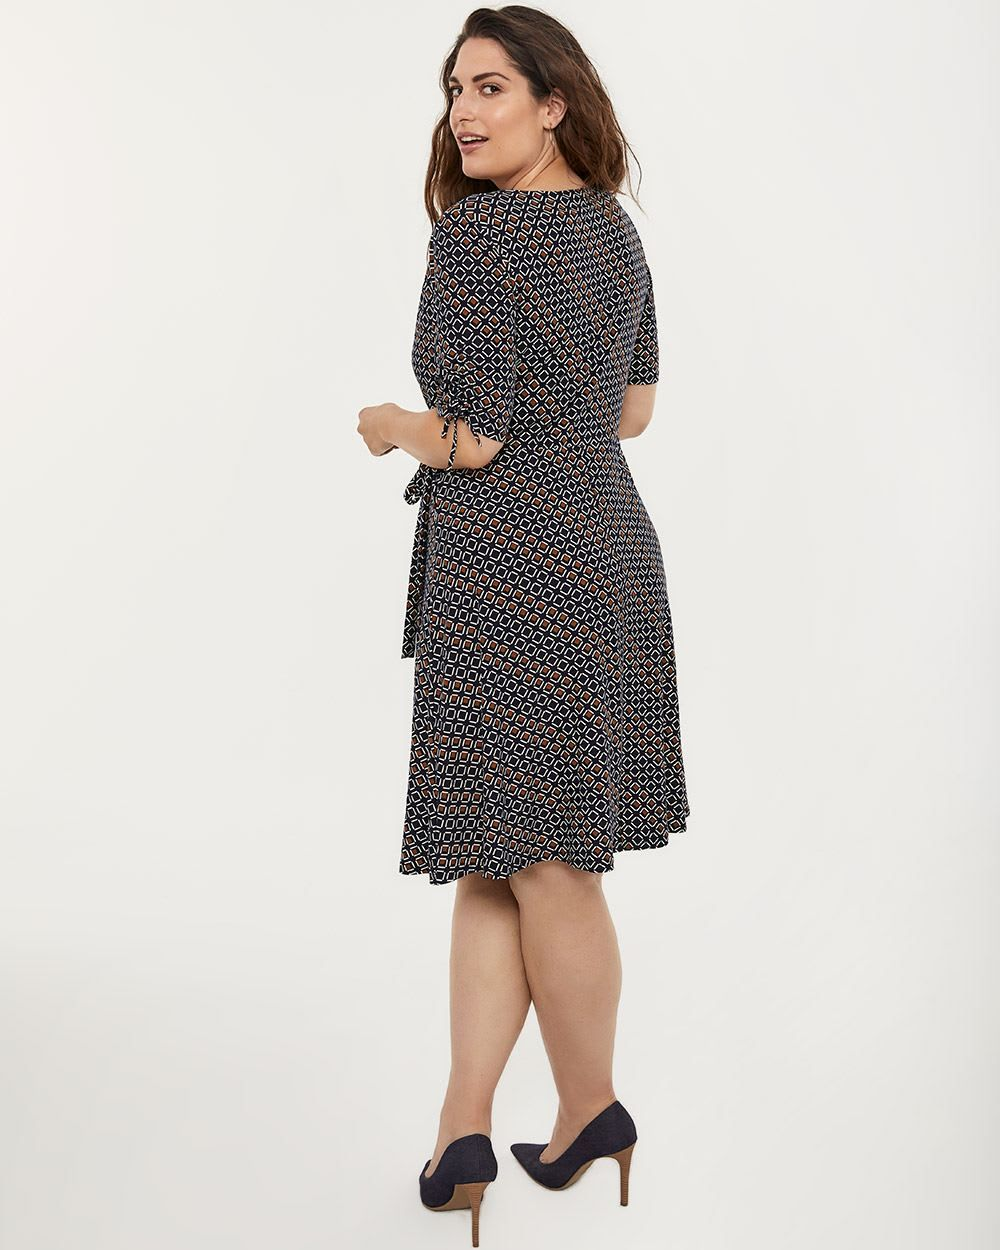 f1f74320d6e4 Women's Cap Sleeve Knot Front Maxi Dress from Lands' End | Amelie wish list  in 2019 | Cap sleeves, Dresses, Women